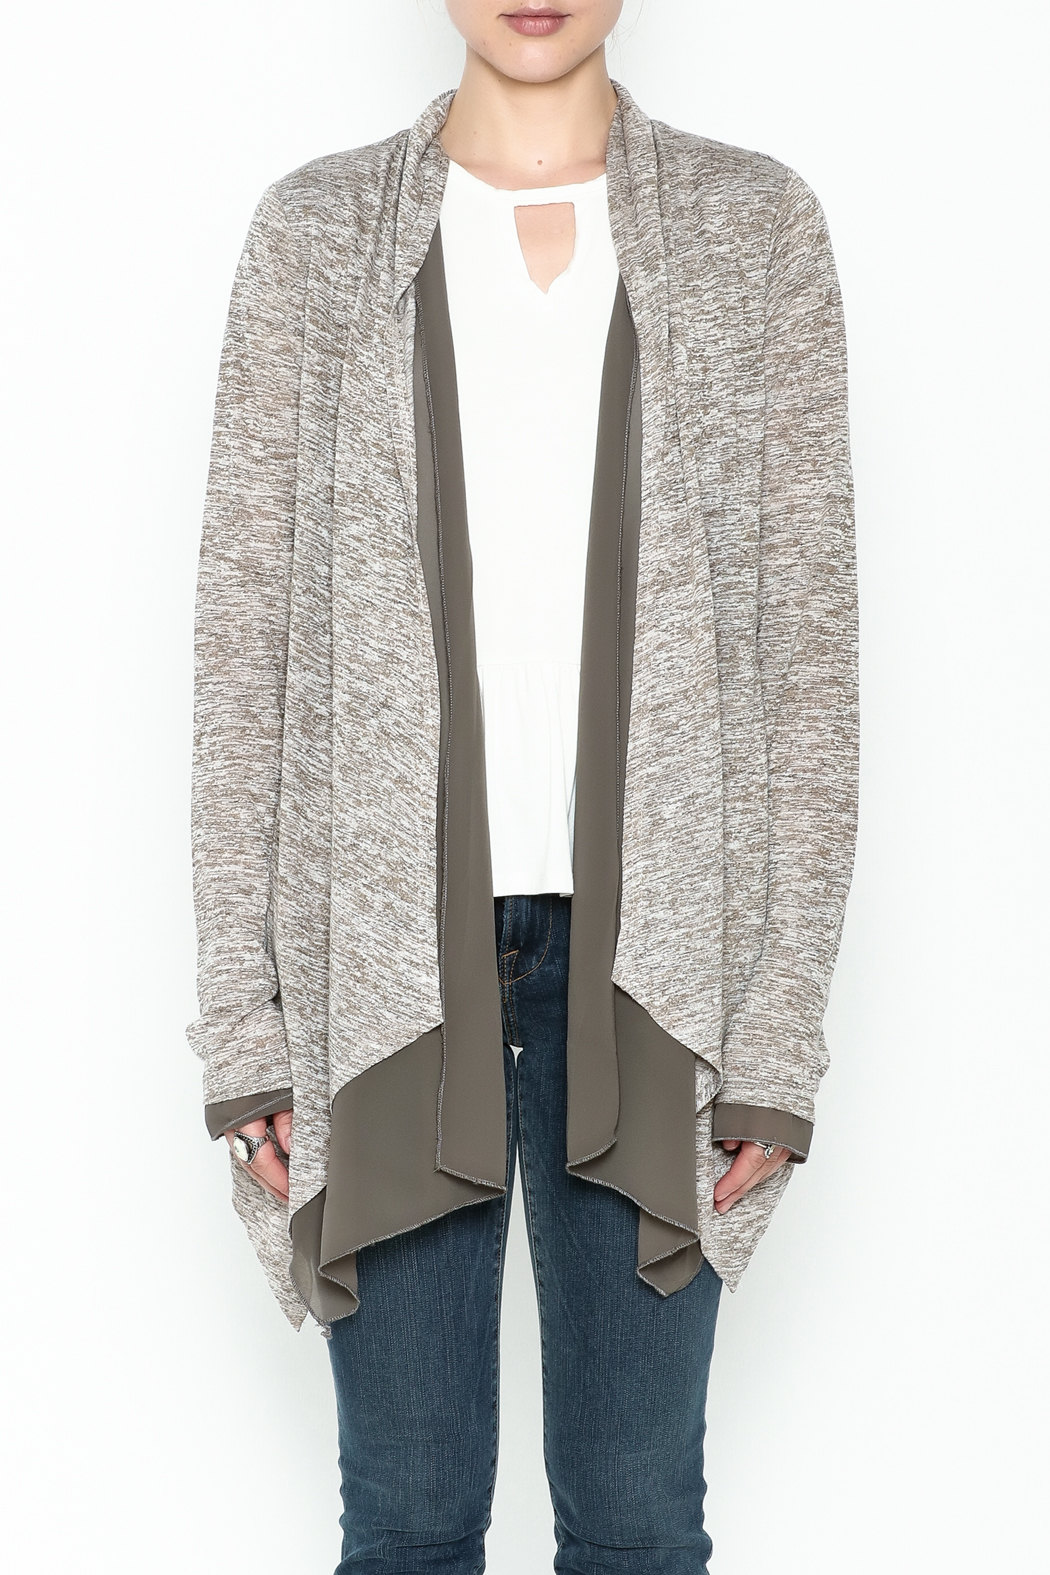 Coco + Carmen Double Layer Cardigan - Front Full Image